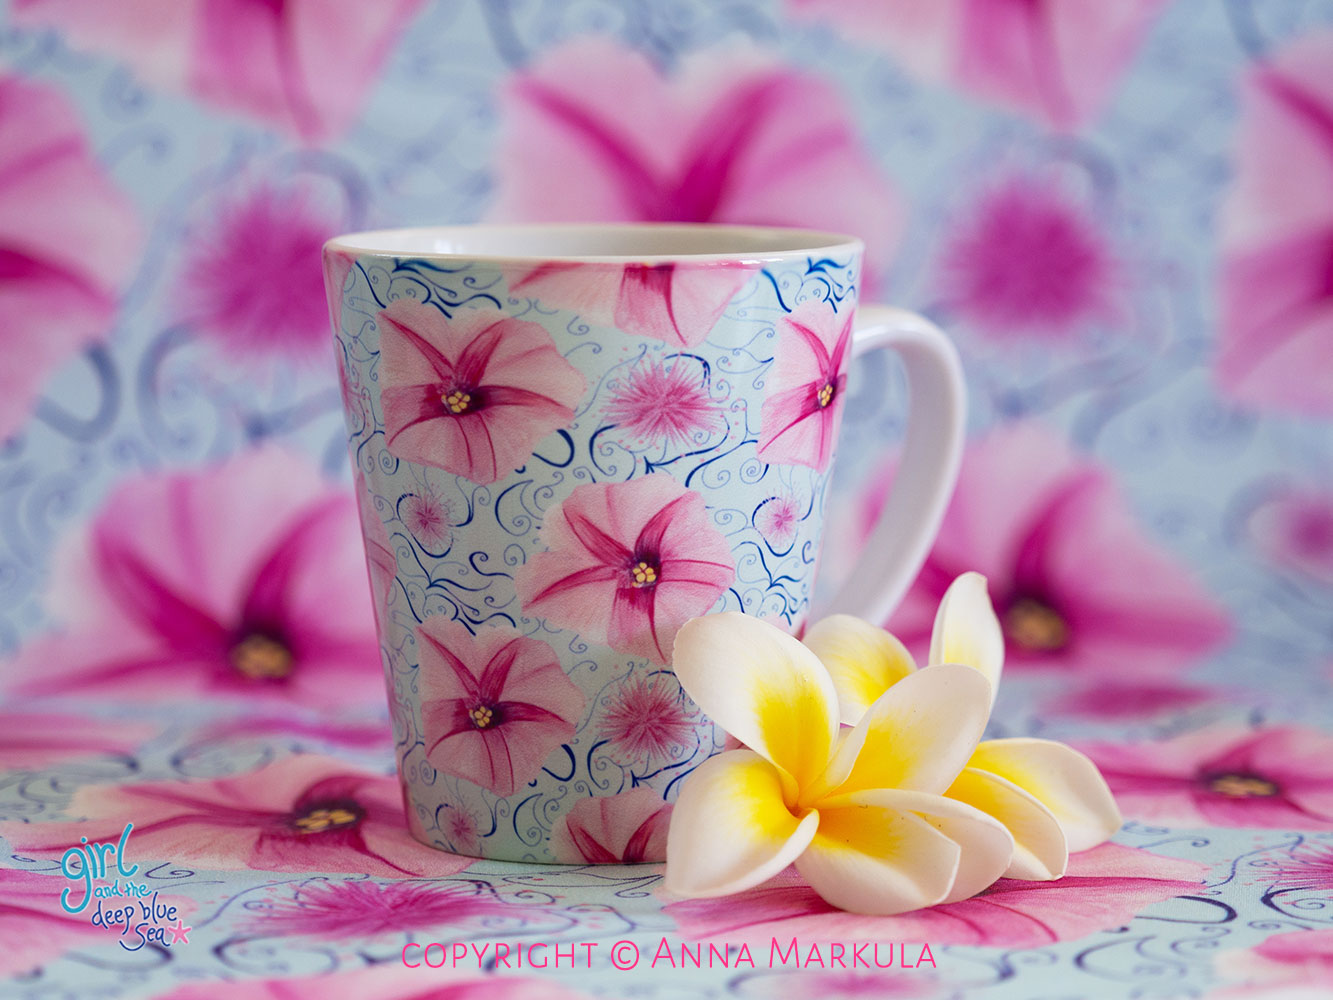 floral repeat pattern design by Australian surface pattern designer